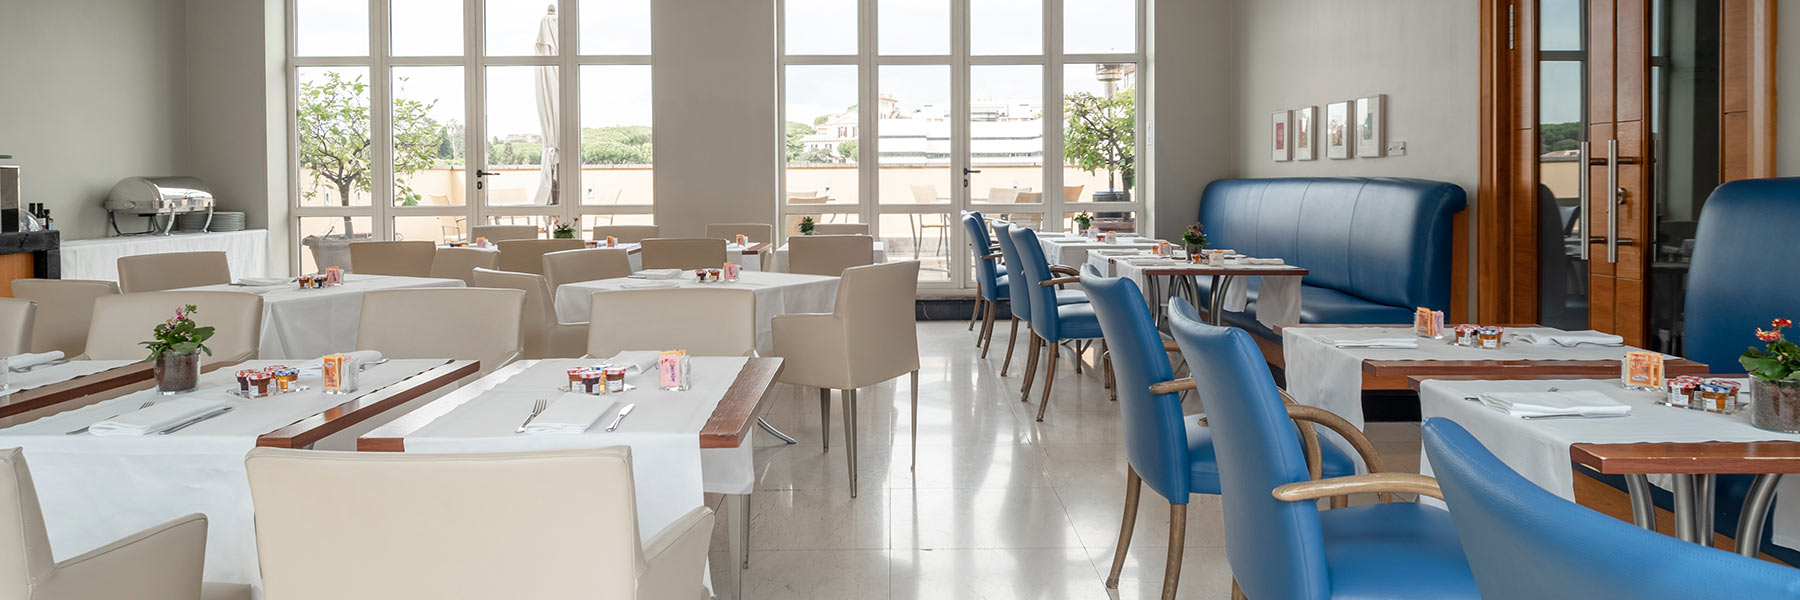 Eat And Drink Hotel Capo D Africa Colosseo Rome